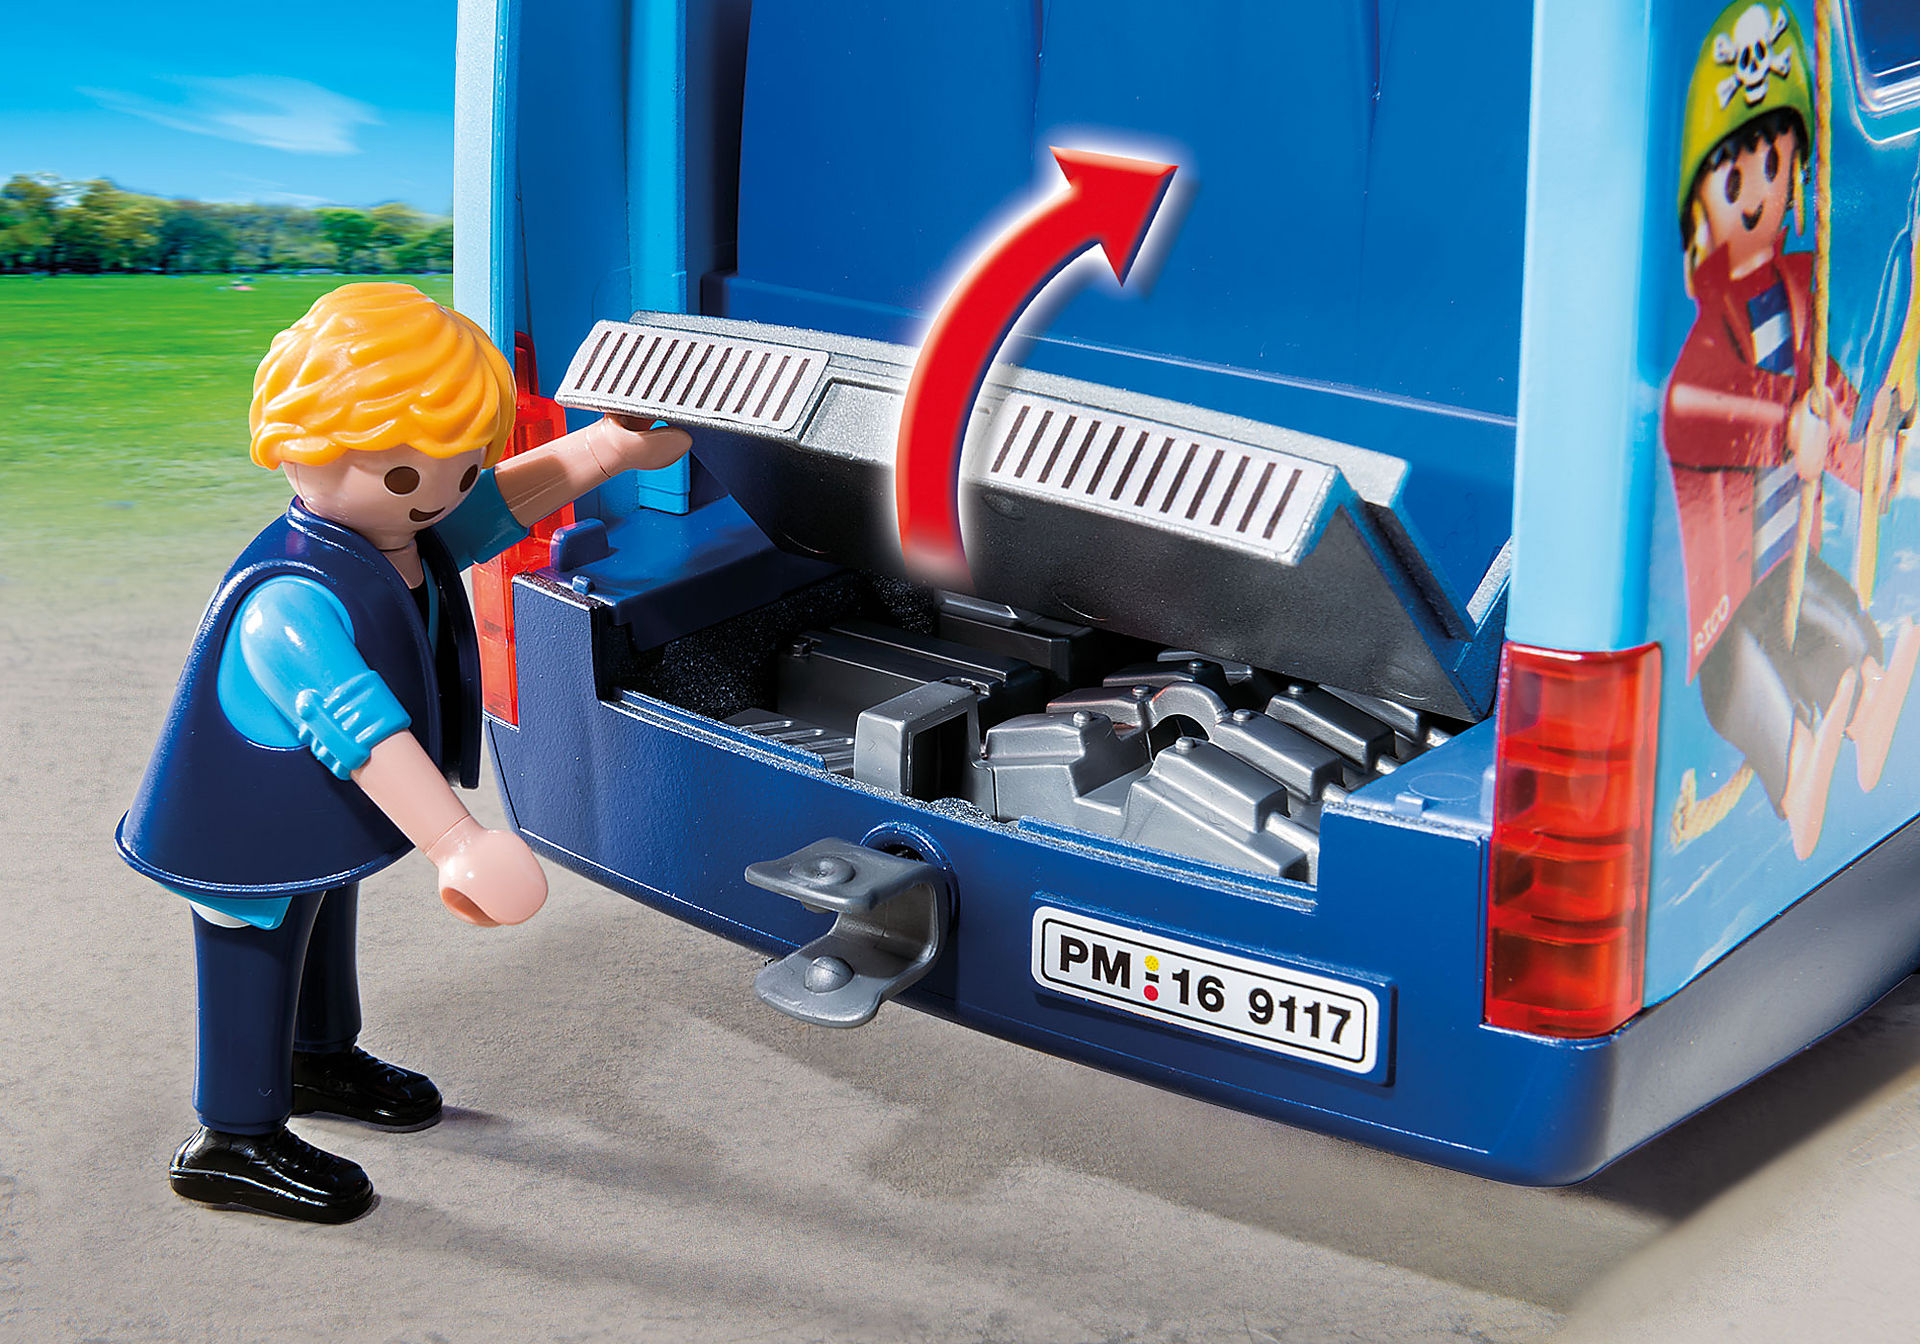 http://media.playmobil.com/i/playmobil/9117_product_extra4/PLAYMOBIL-FunPark Bus